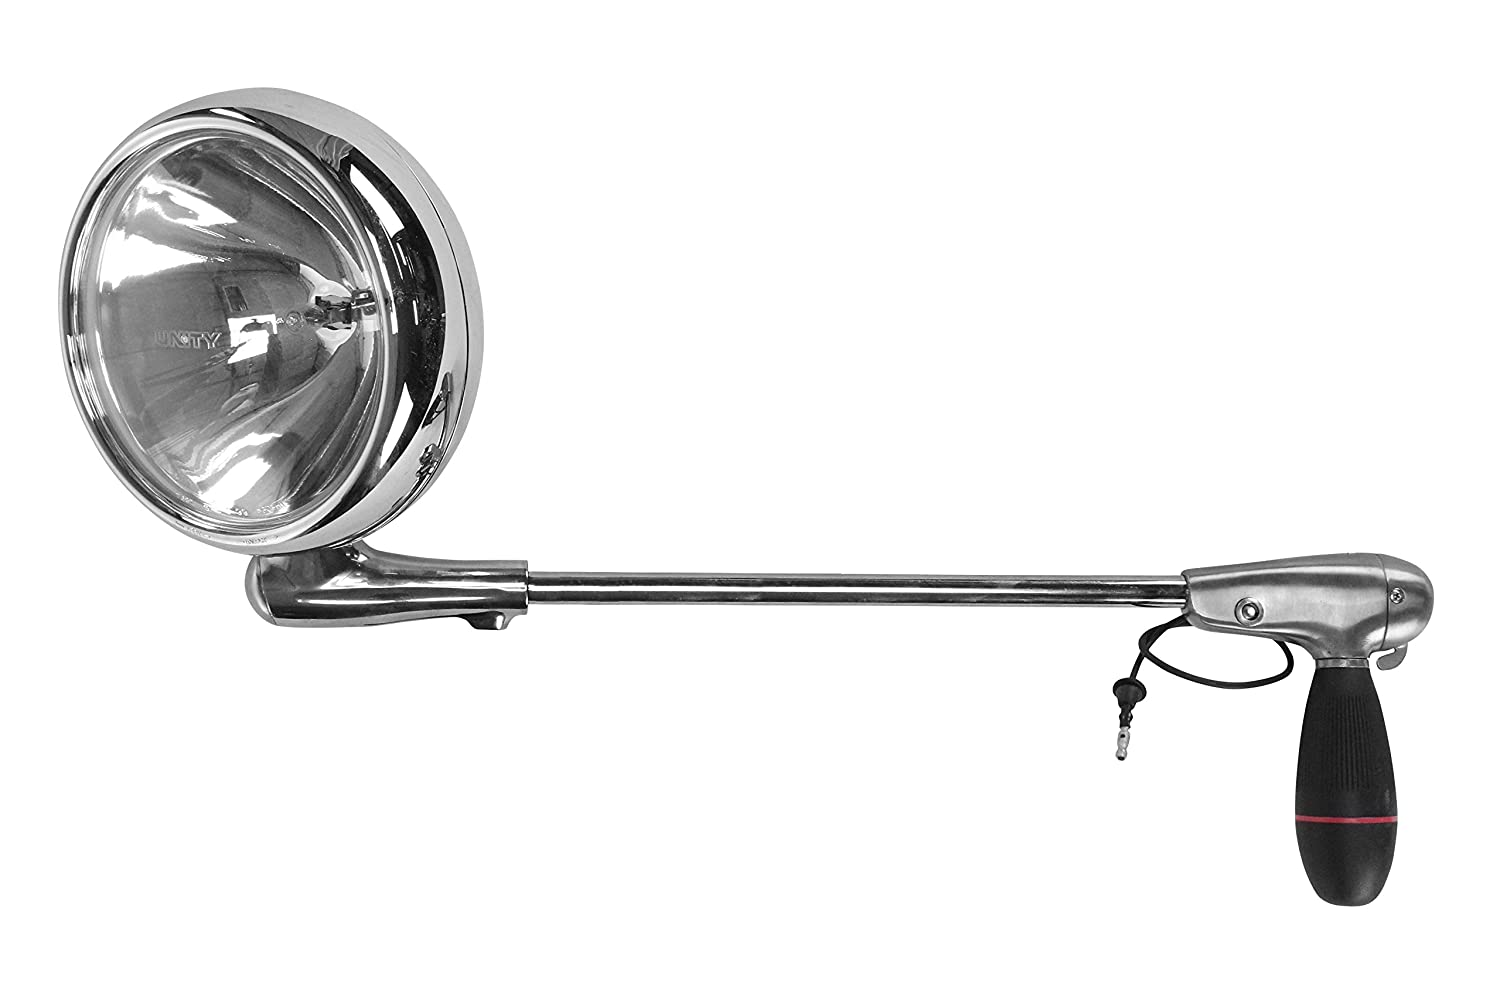 100W Halogen 2004 Acura MDX Post Mount Spotlight Driver Side with Install kit -Chrome Larson Electronics 1015P9IQHVS 6 inch